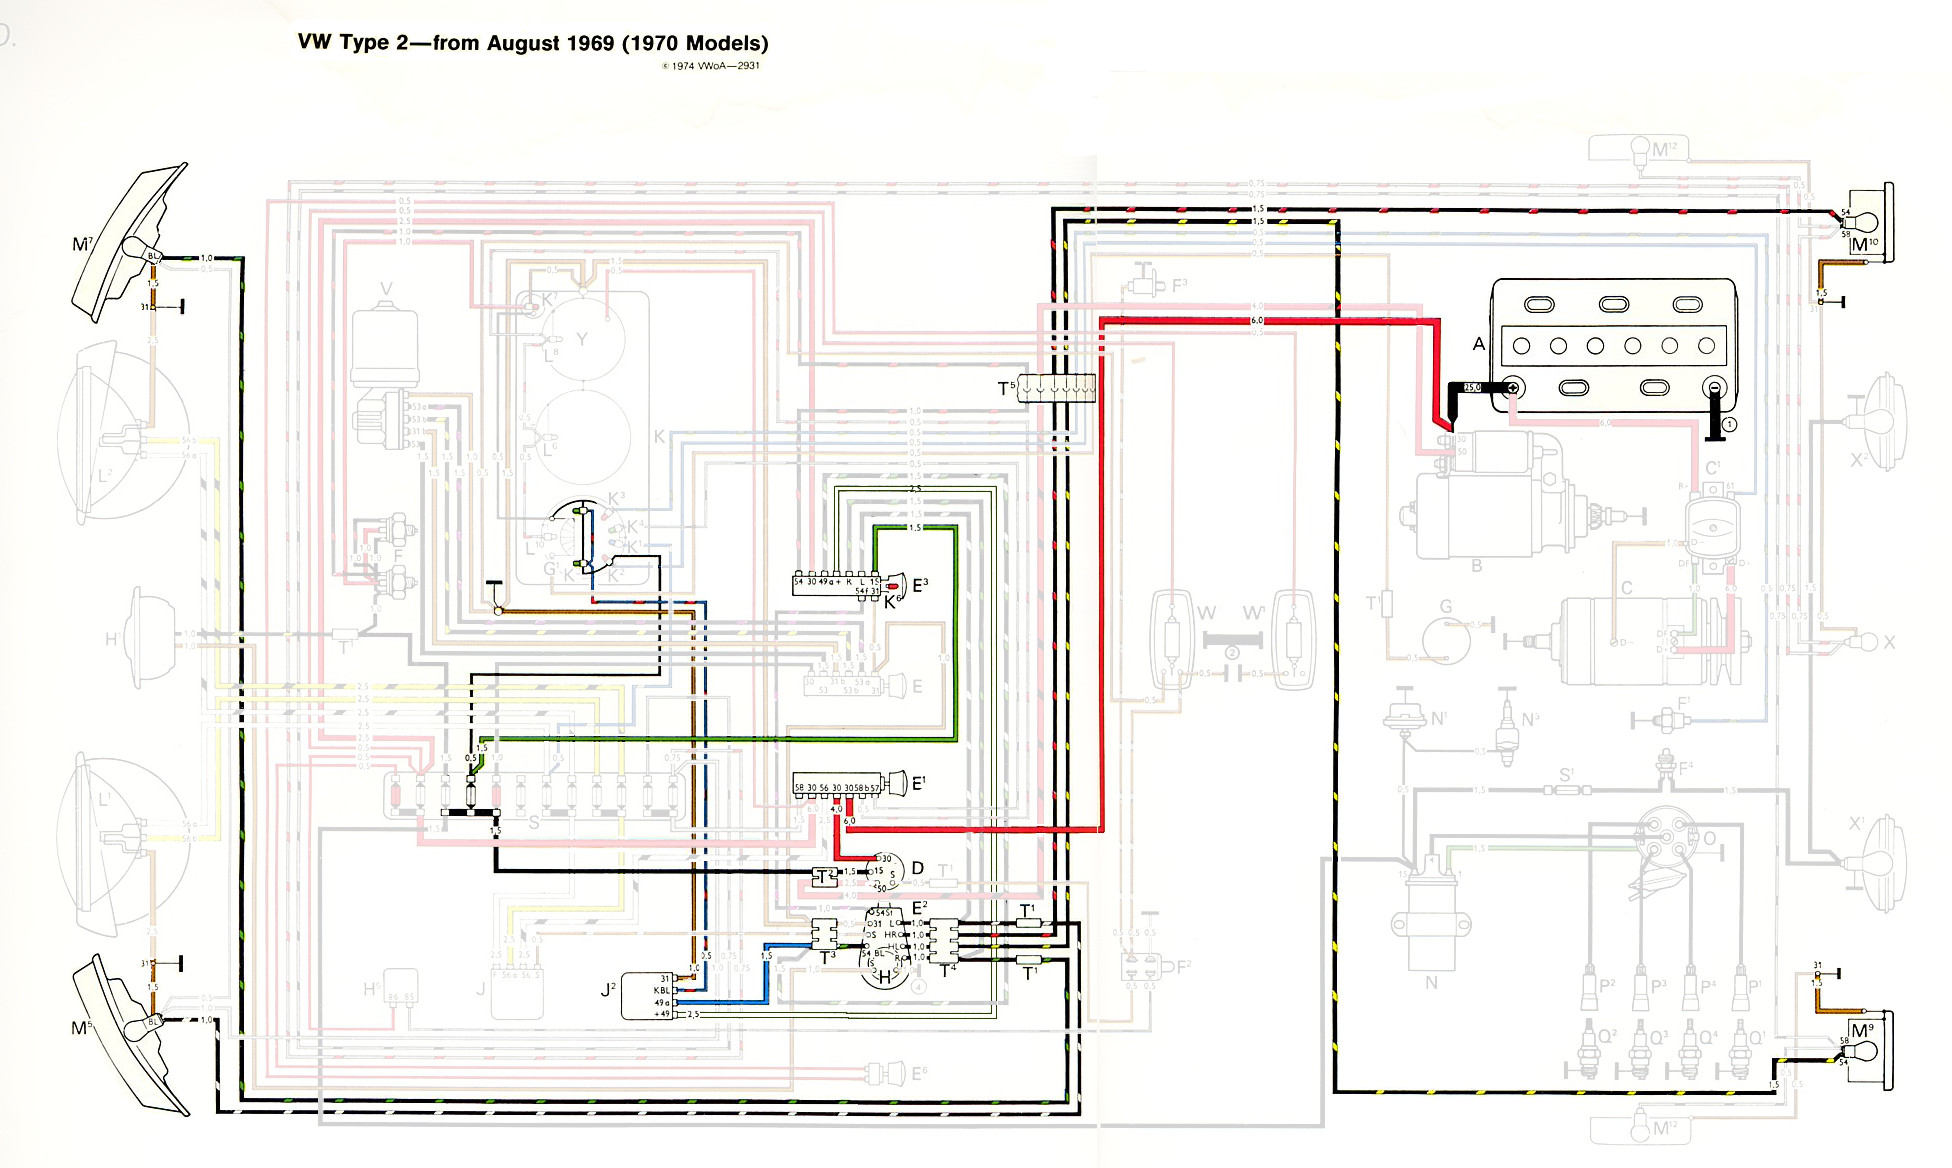 hight resolution of thesamba com type 2 wiring diagrams vw type 2 1973 wiring diagram vw type 2 wiring diagram